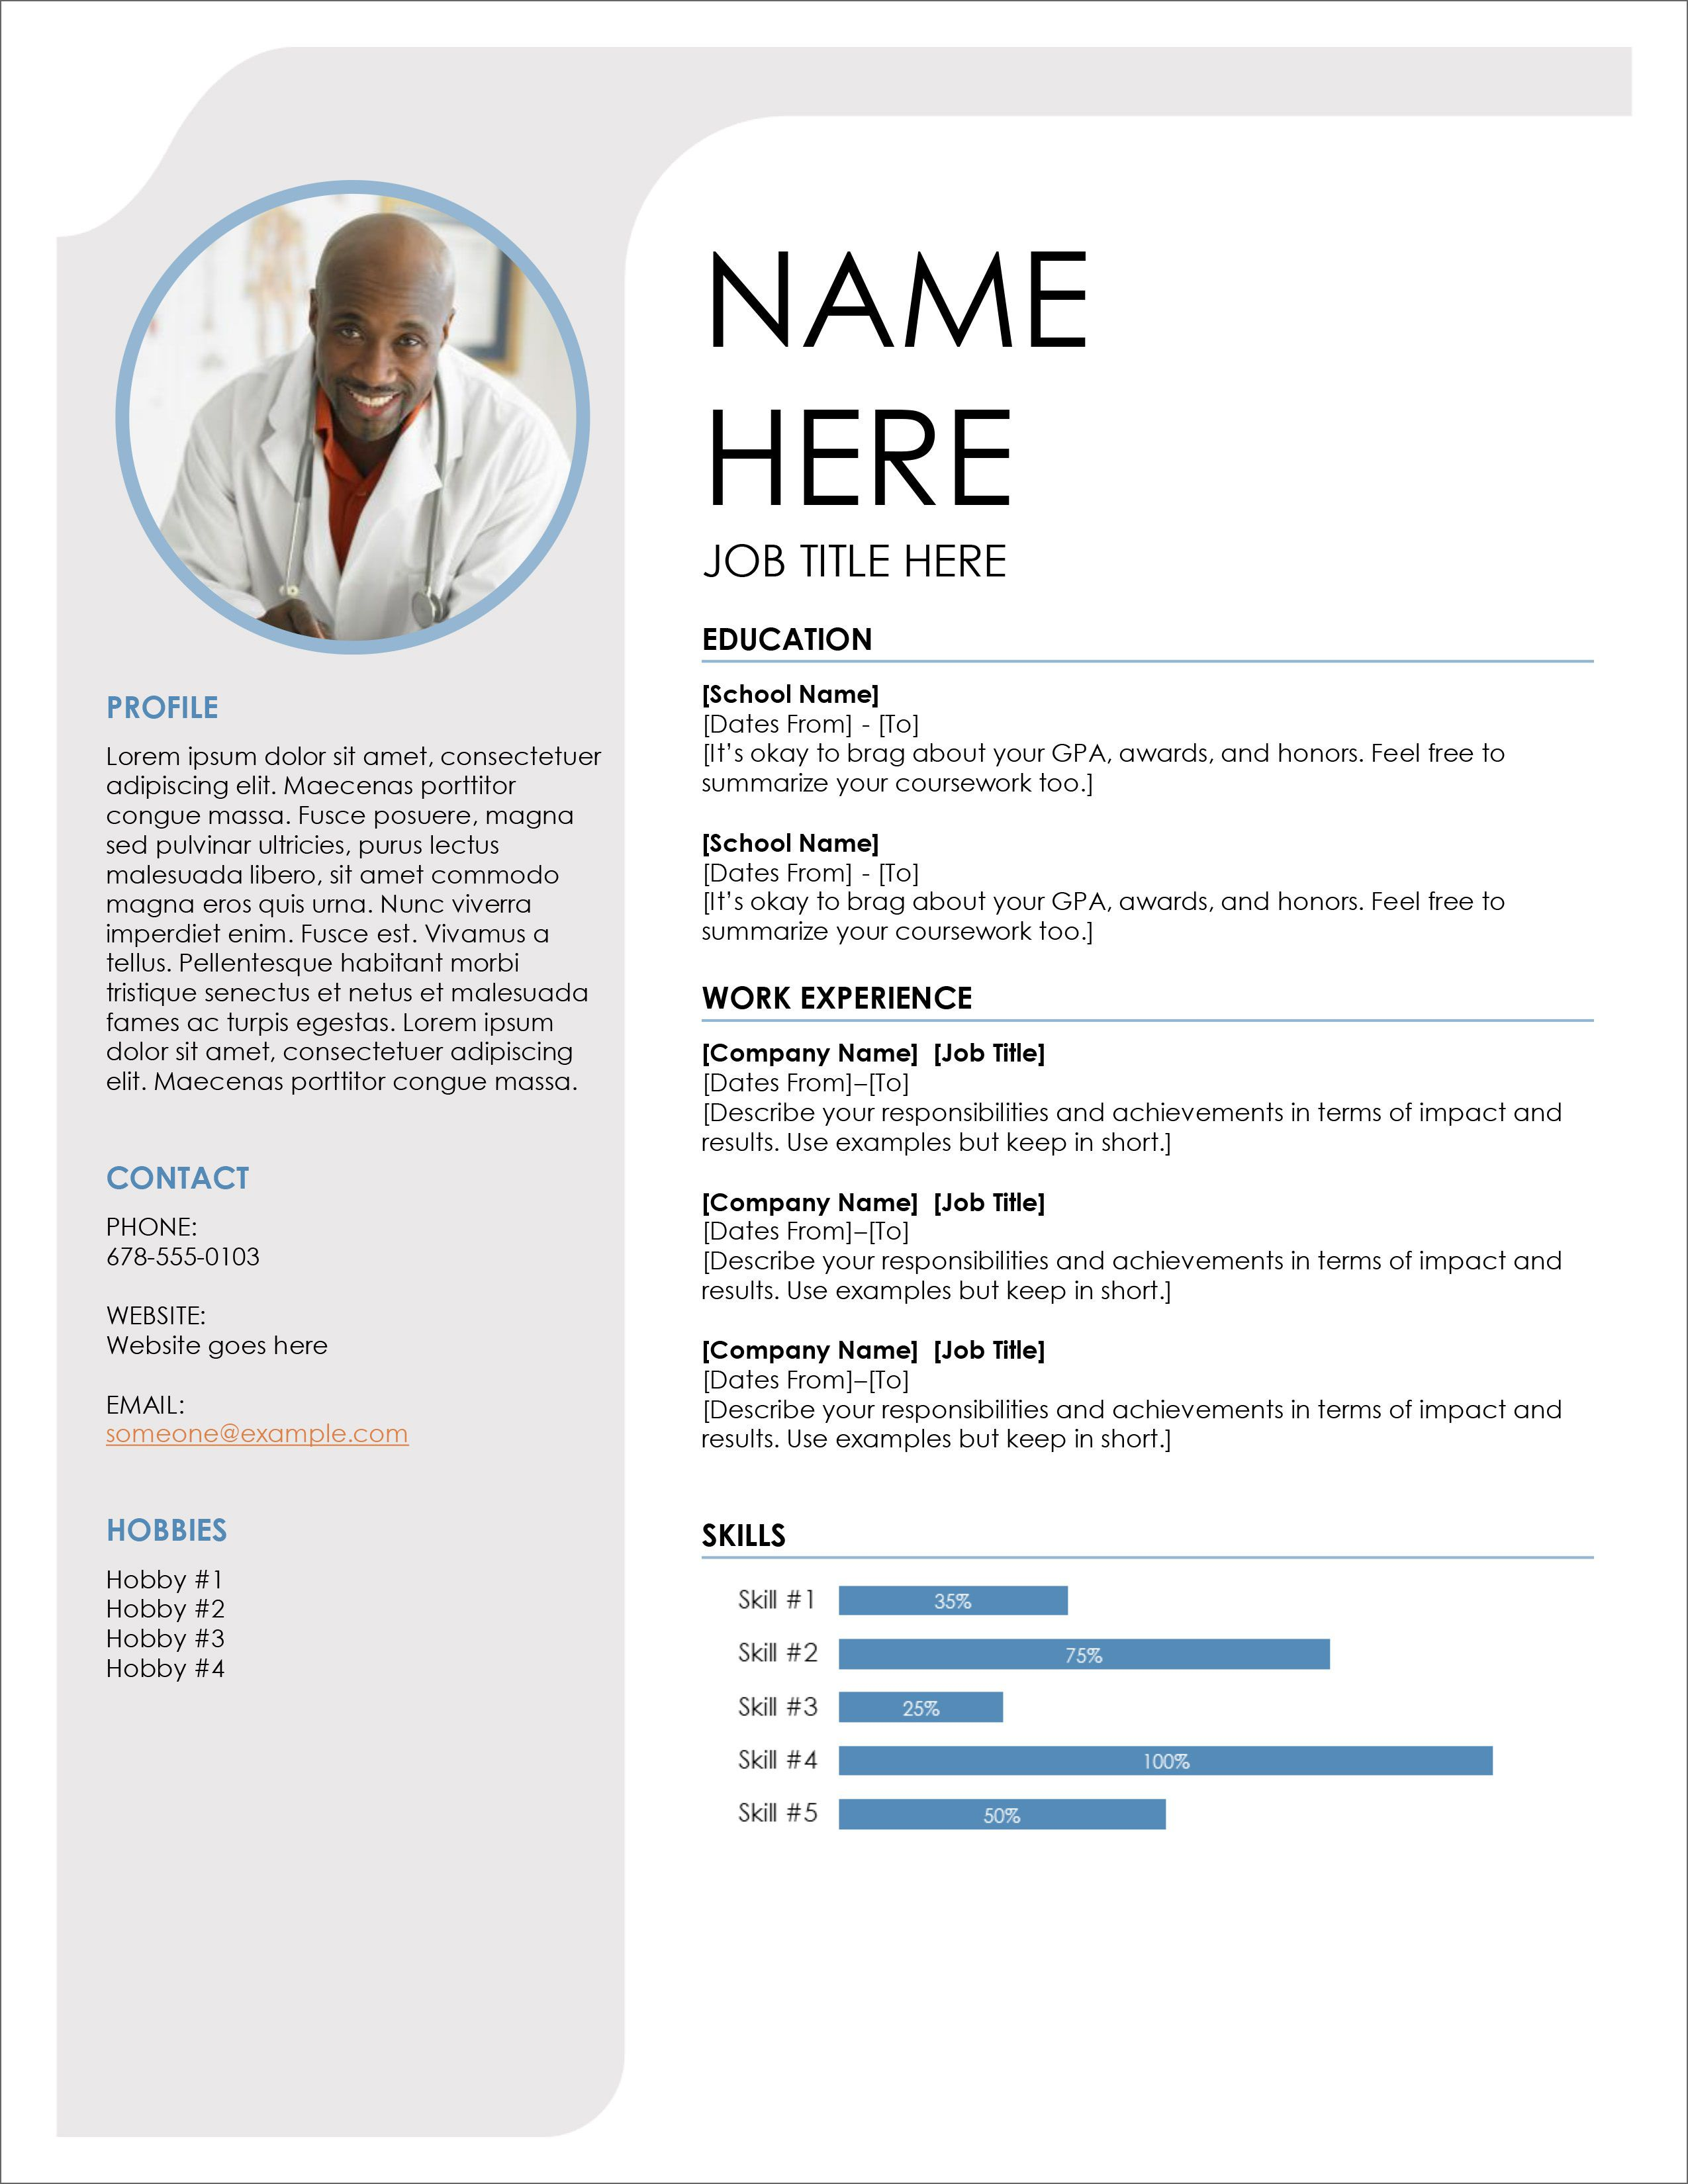 006 Astounding Professional Resume Template Free Download Word Image  Cv 2020 Format With PhotoFull